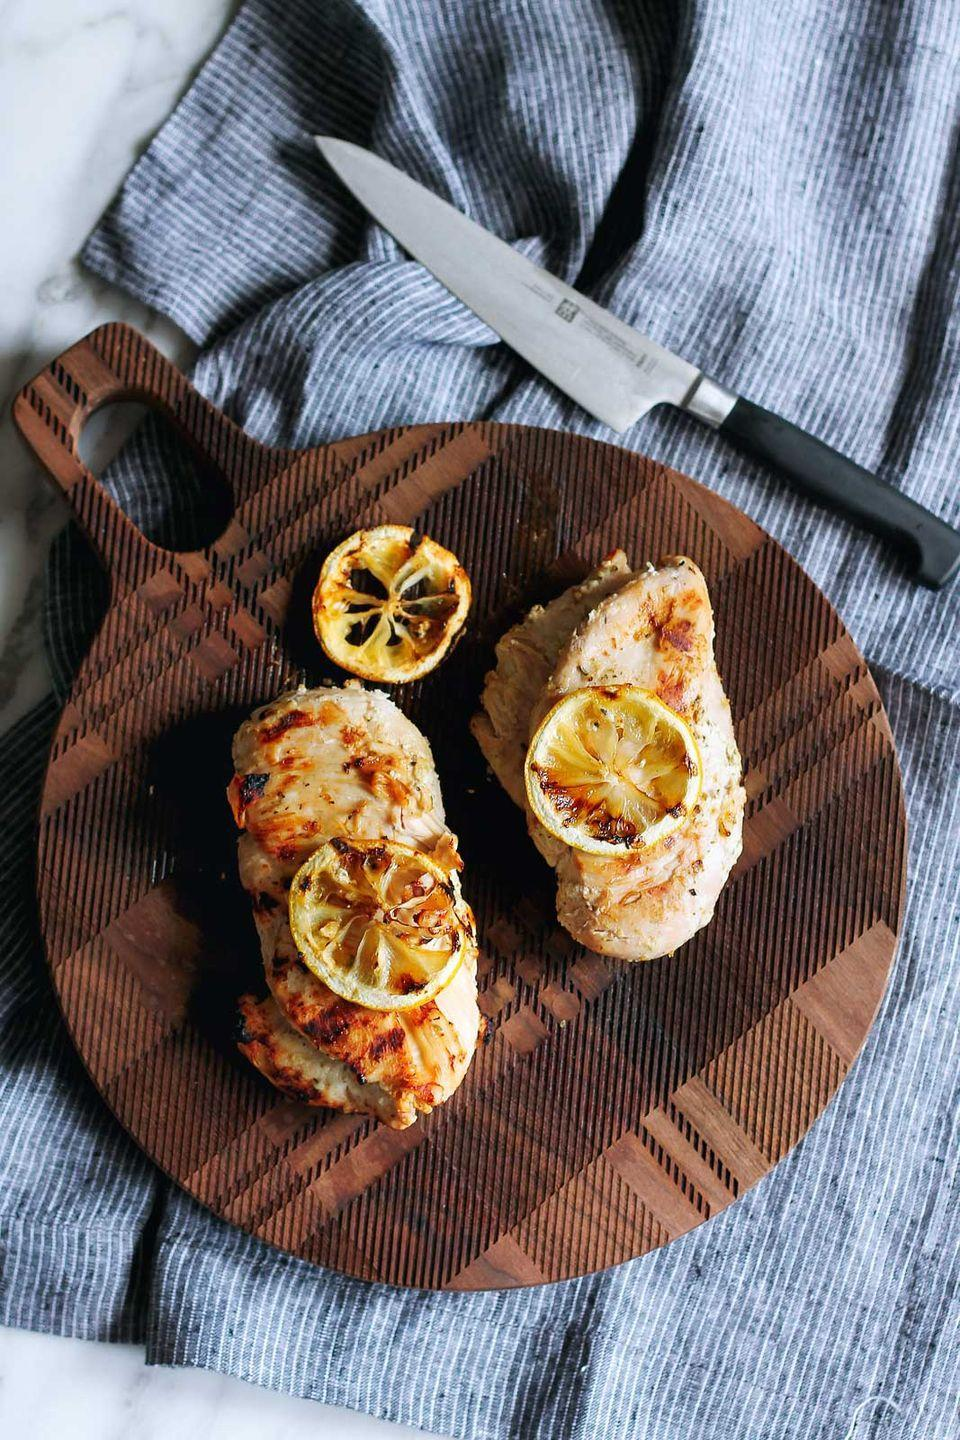 """<p>This chicken by<a href=""""https://www.ambitiouskitchen.com/5-ingredient-grilled-lemon-yogurt-marinated-chicken/"""" rel=""""nofollow noopener"""" target=""""_blank"""" data-ylk=""""slk:Ambitious Kitchen"""" class=""""link rapid-noclick-resp""""> Ambitious Kitchen</a> makes dinner a snap during the week, as it requires only 5 ingredients and can be made in bulk for leftovers. Plain grilled chicken is a terrific health food, since it's lean protein and low in calories. And the Greek yogurt and olive oil have gut health and anti-inflammatory benefits, respectively, as well.</p>"""